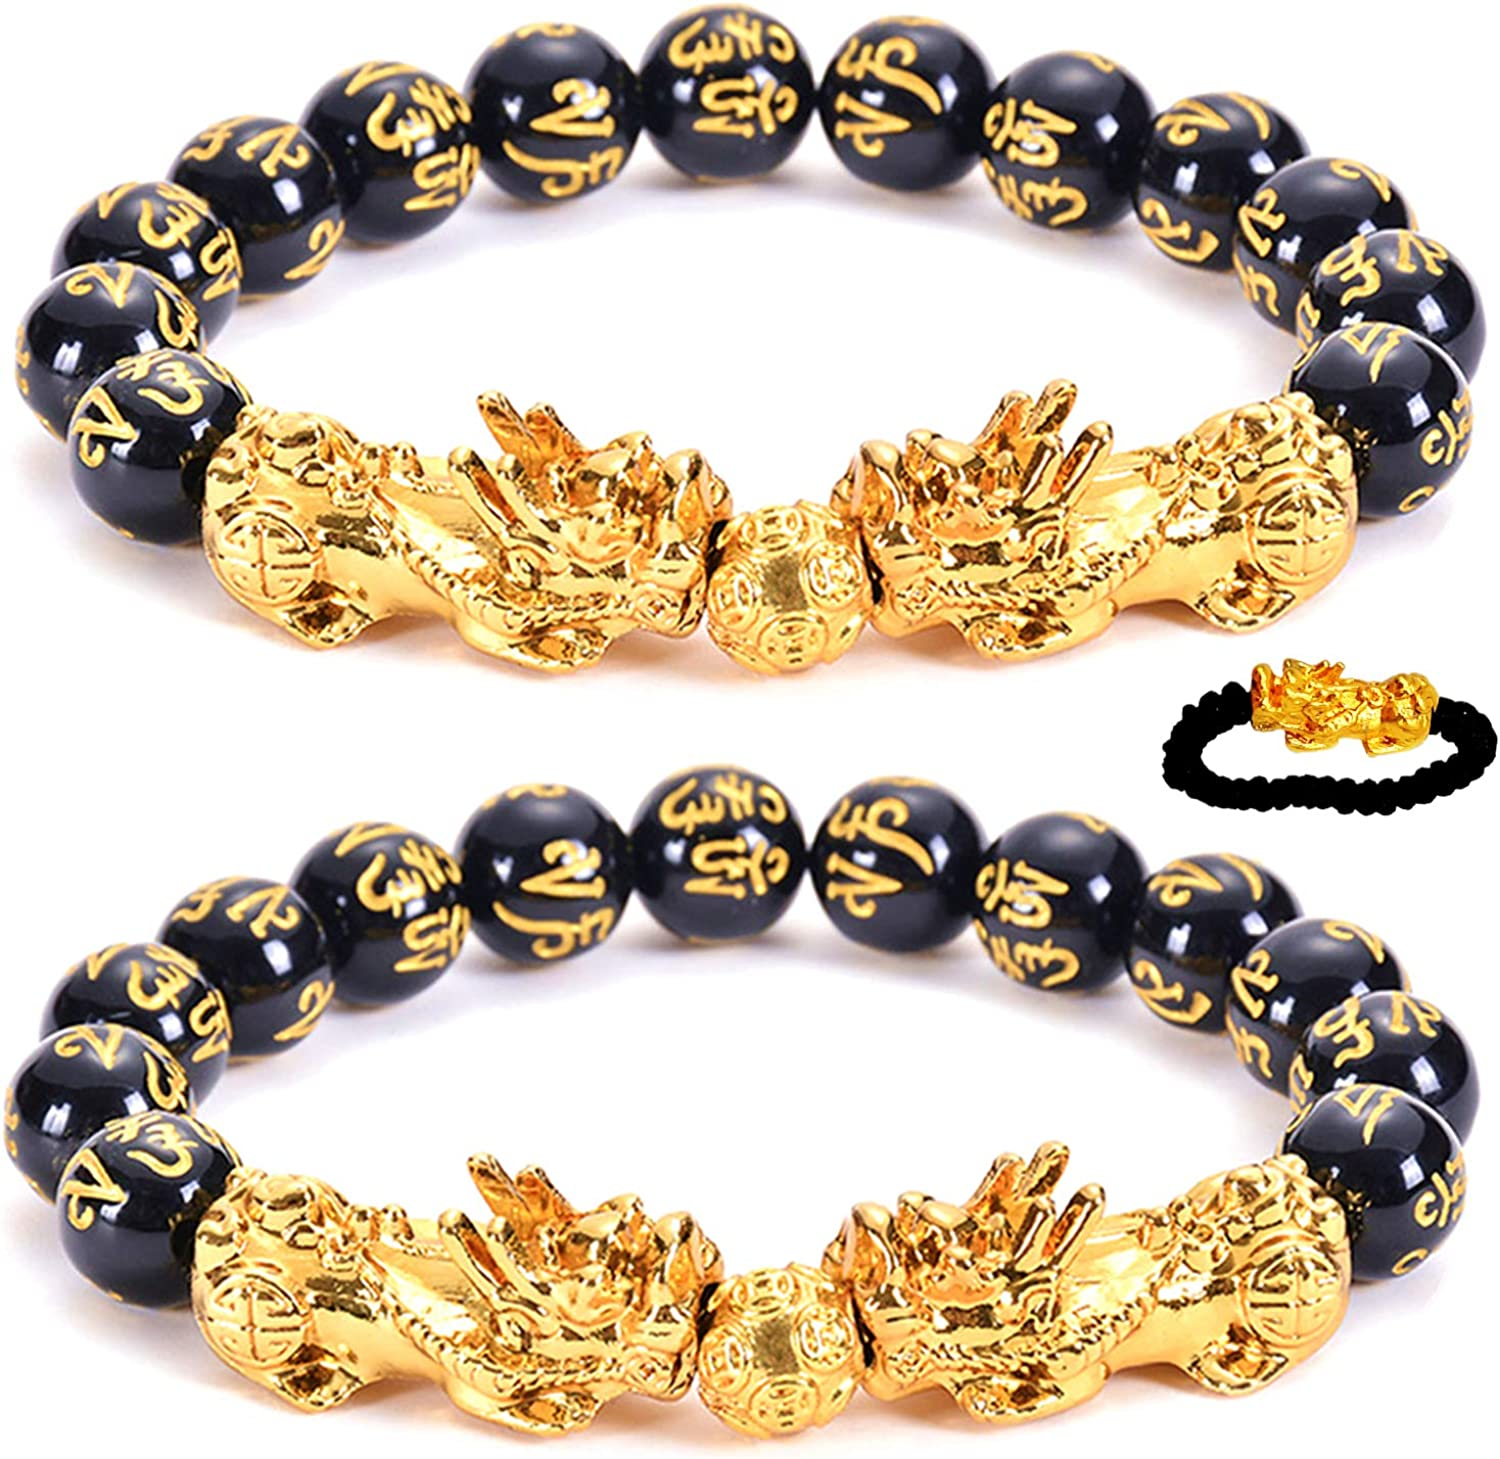 Feng Shui Amulet Bracelet Prosperity 12mm Mantra Bead Bracelet with Double Gold Plated Pi Xiu/Pi Yao Attract Lucky and Wealthy Bangle…